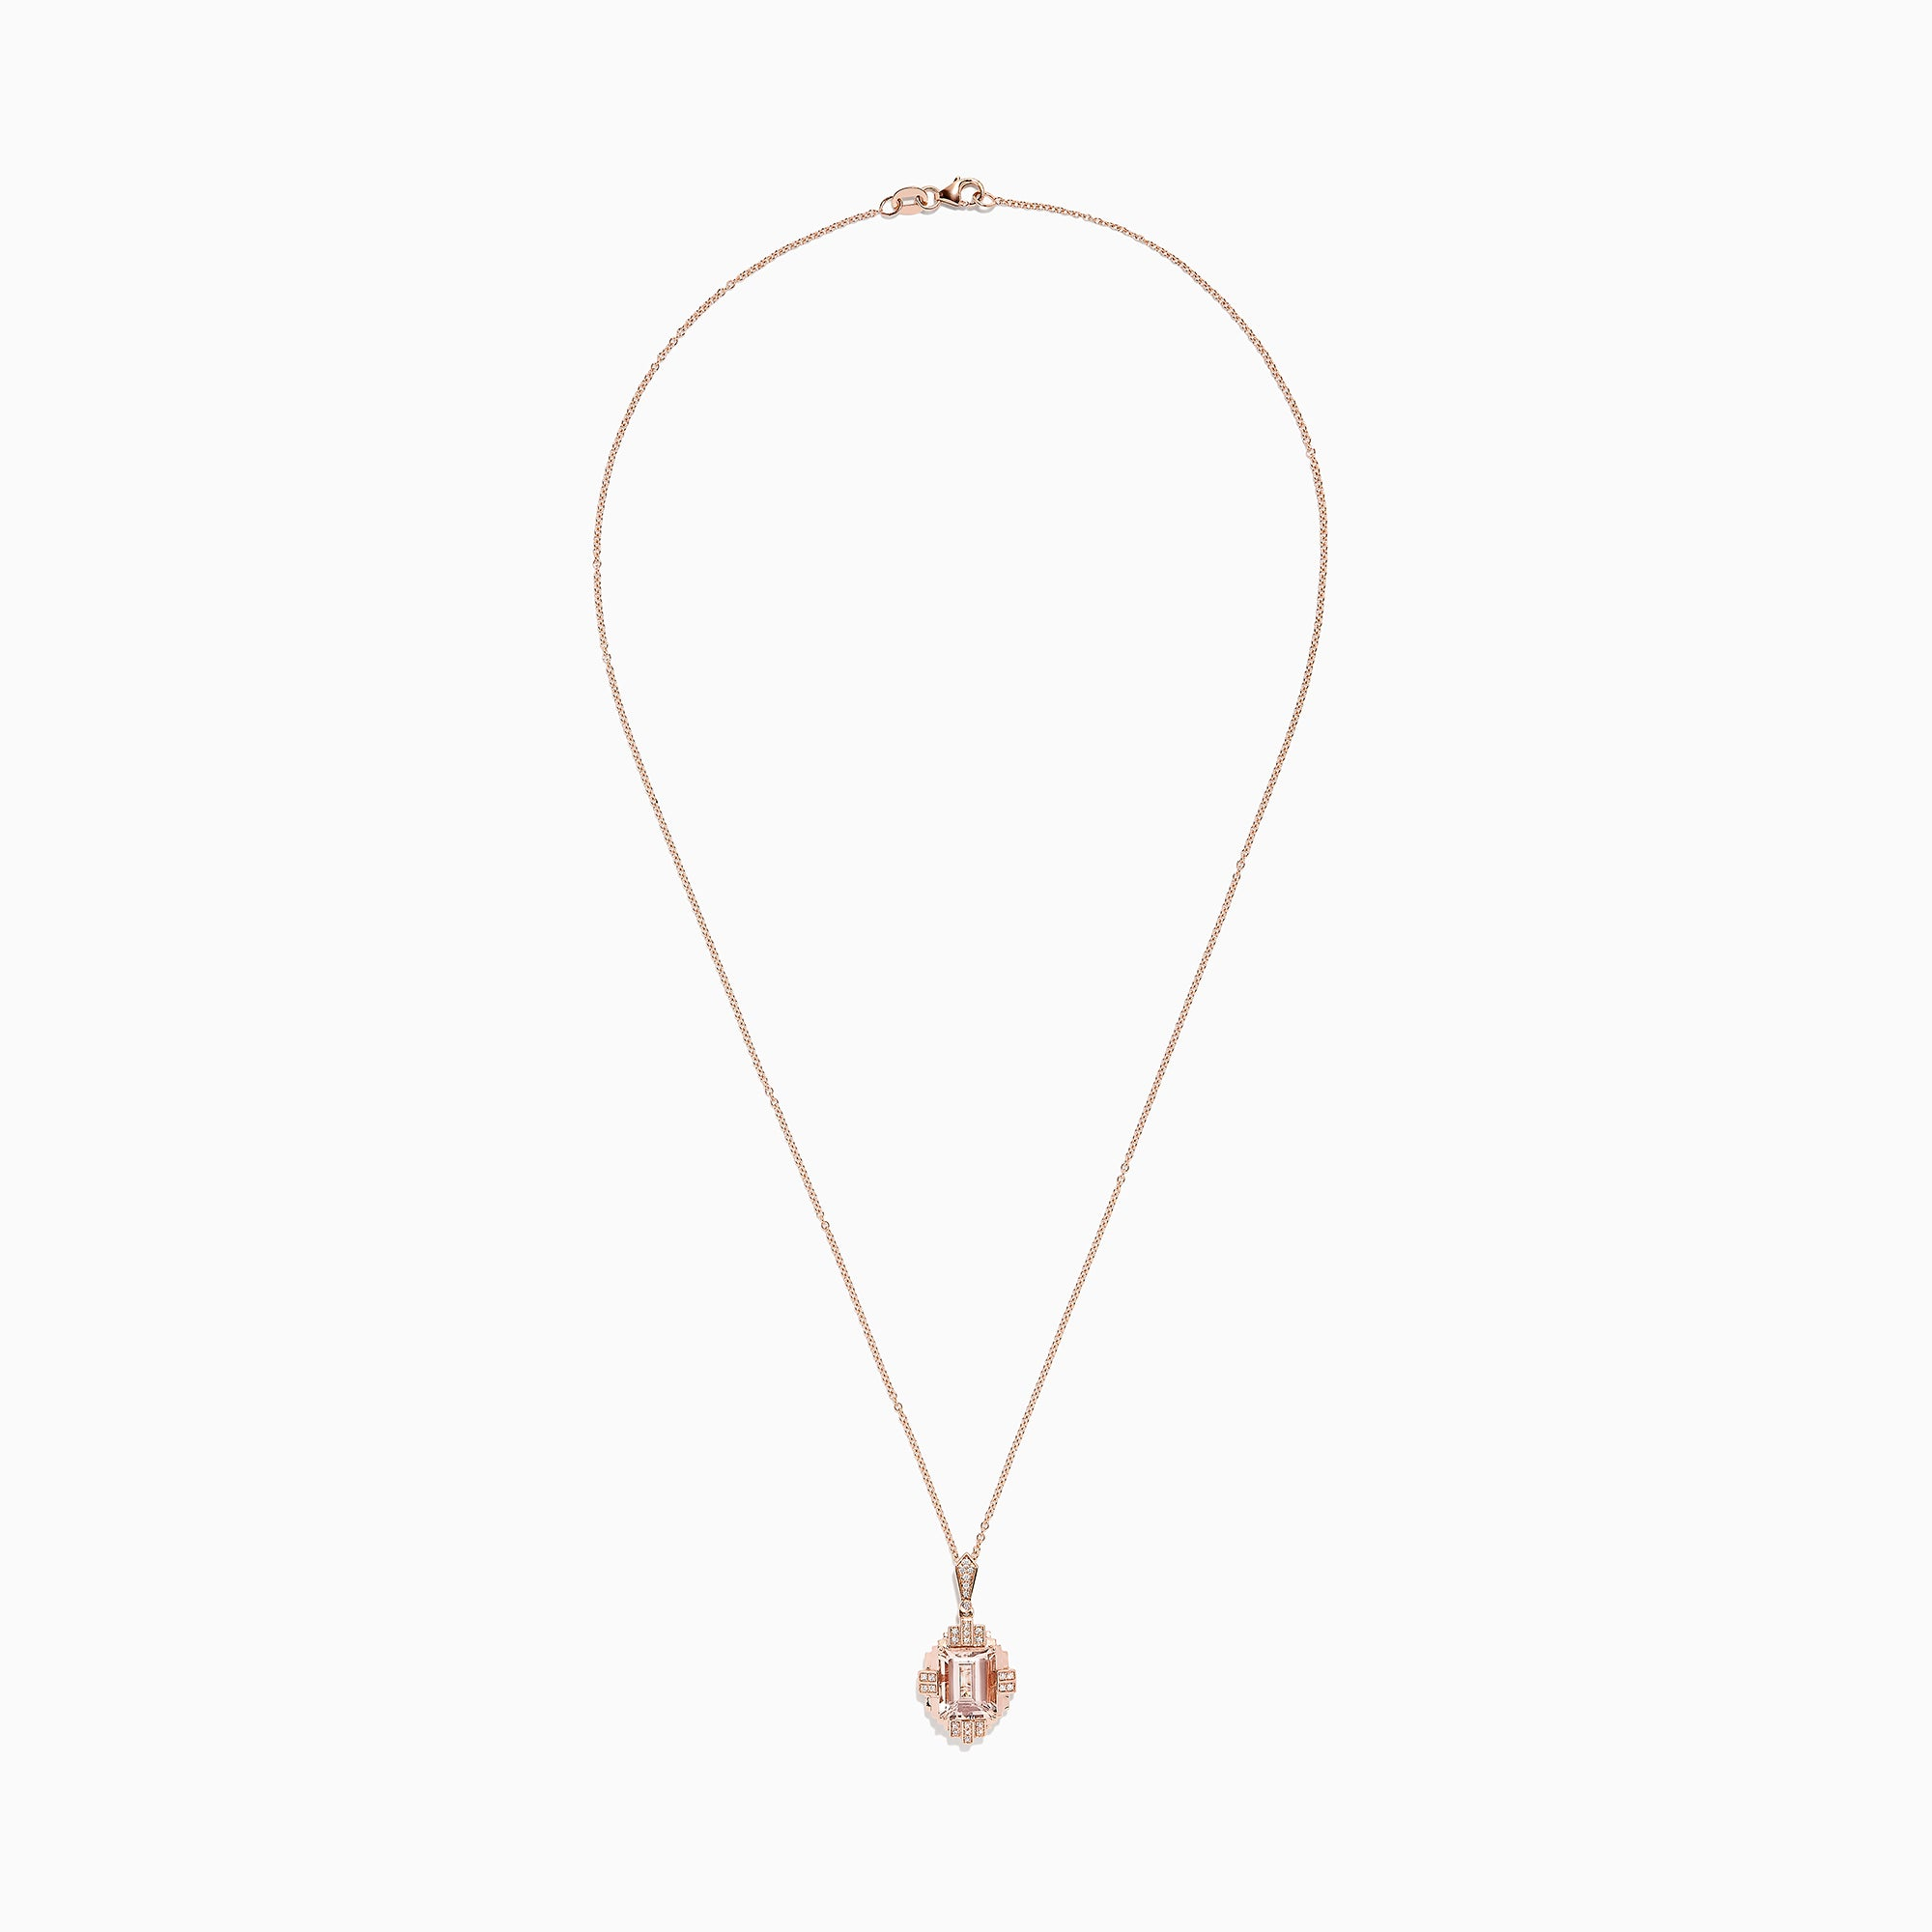 Effy 14K Rose Gold Morganite and Diamond Pendant, 2.73 TCW